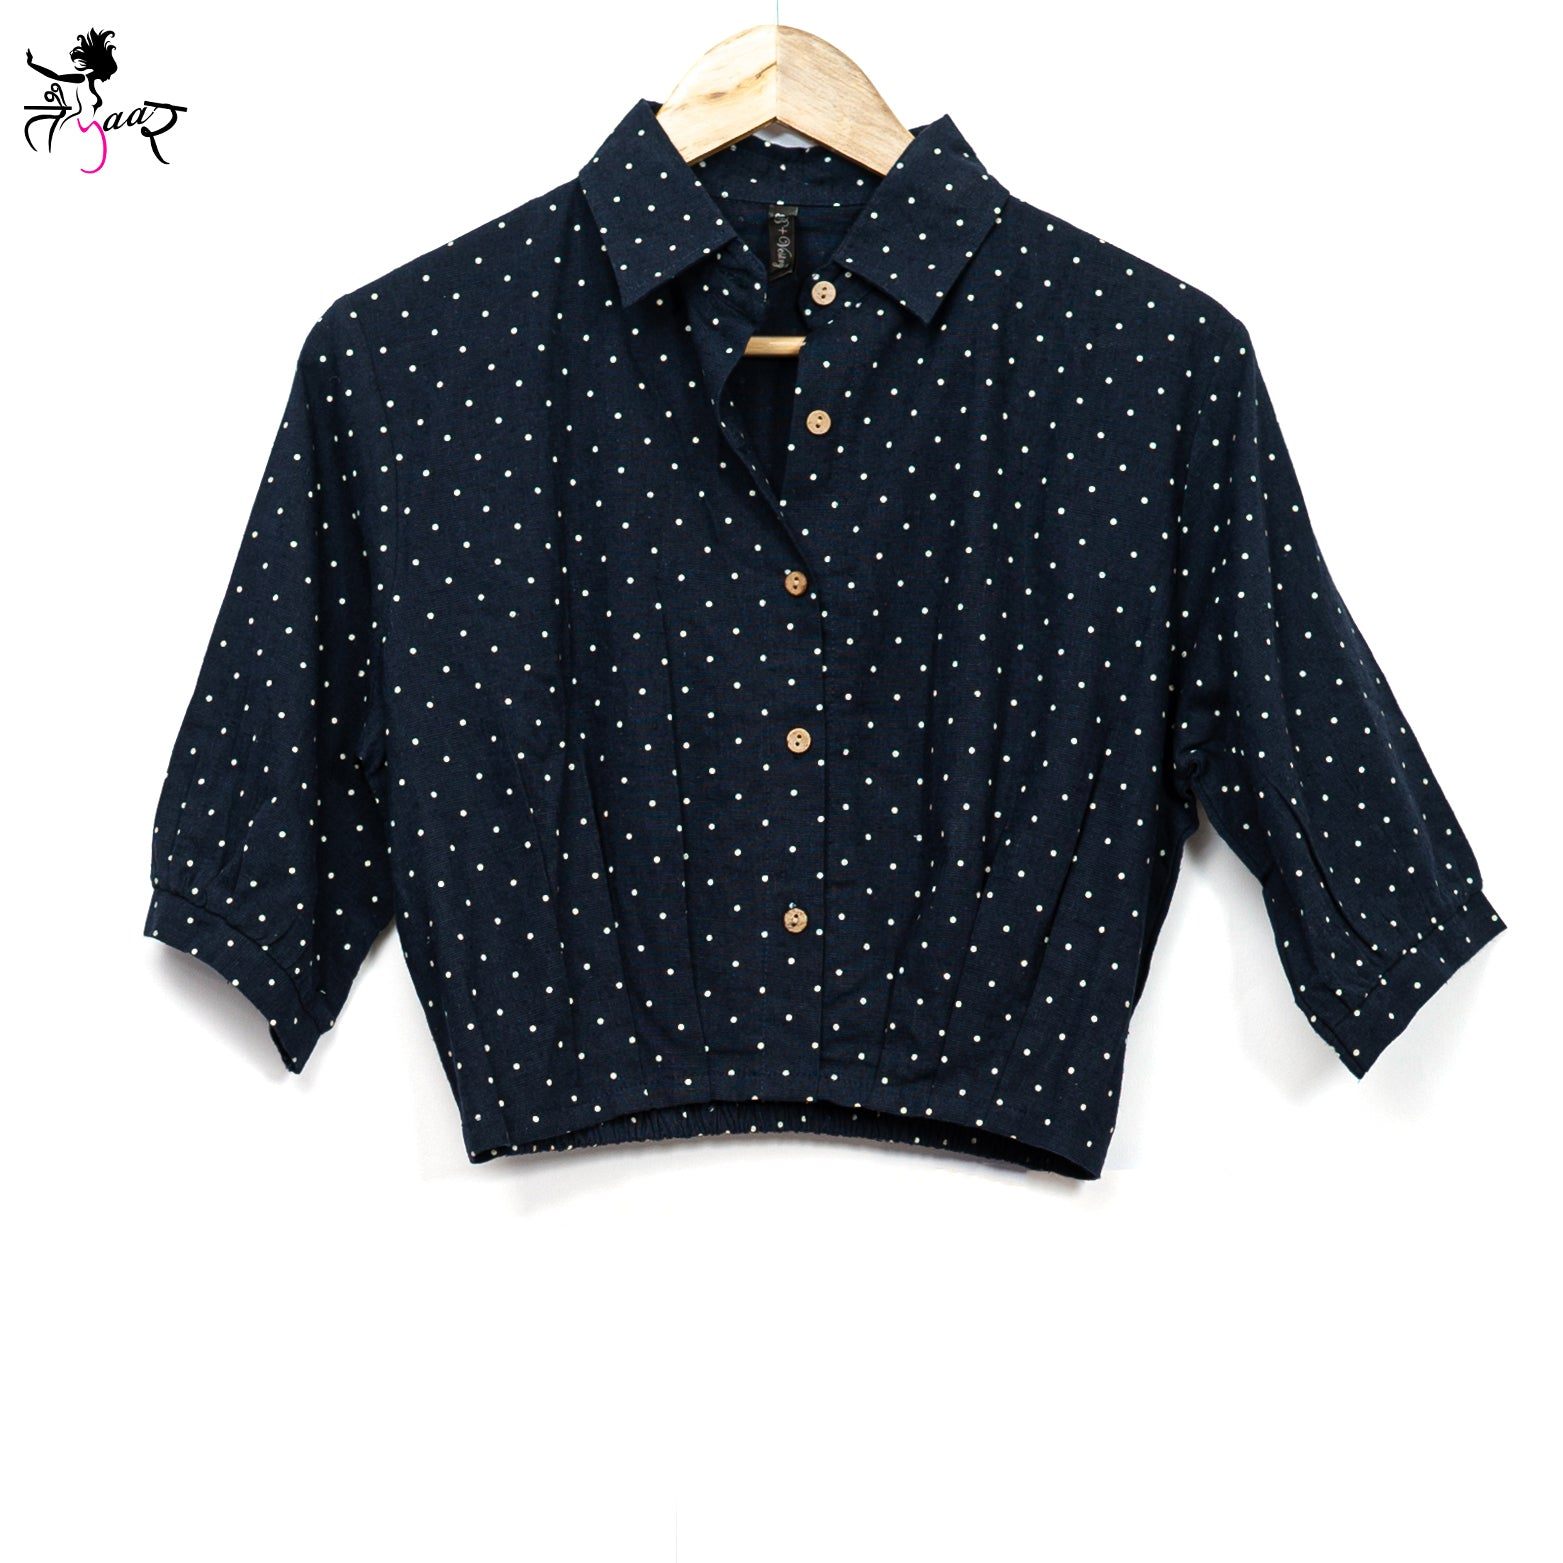 Polka Dots Crop Shirt